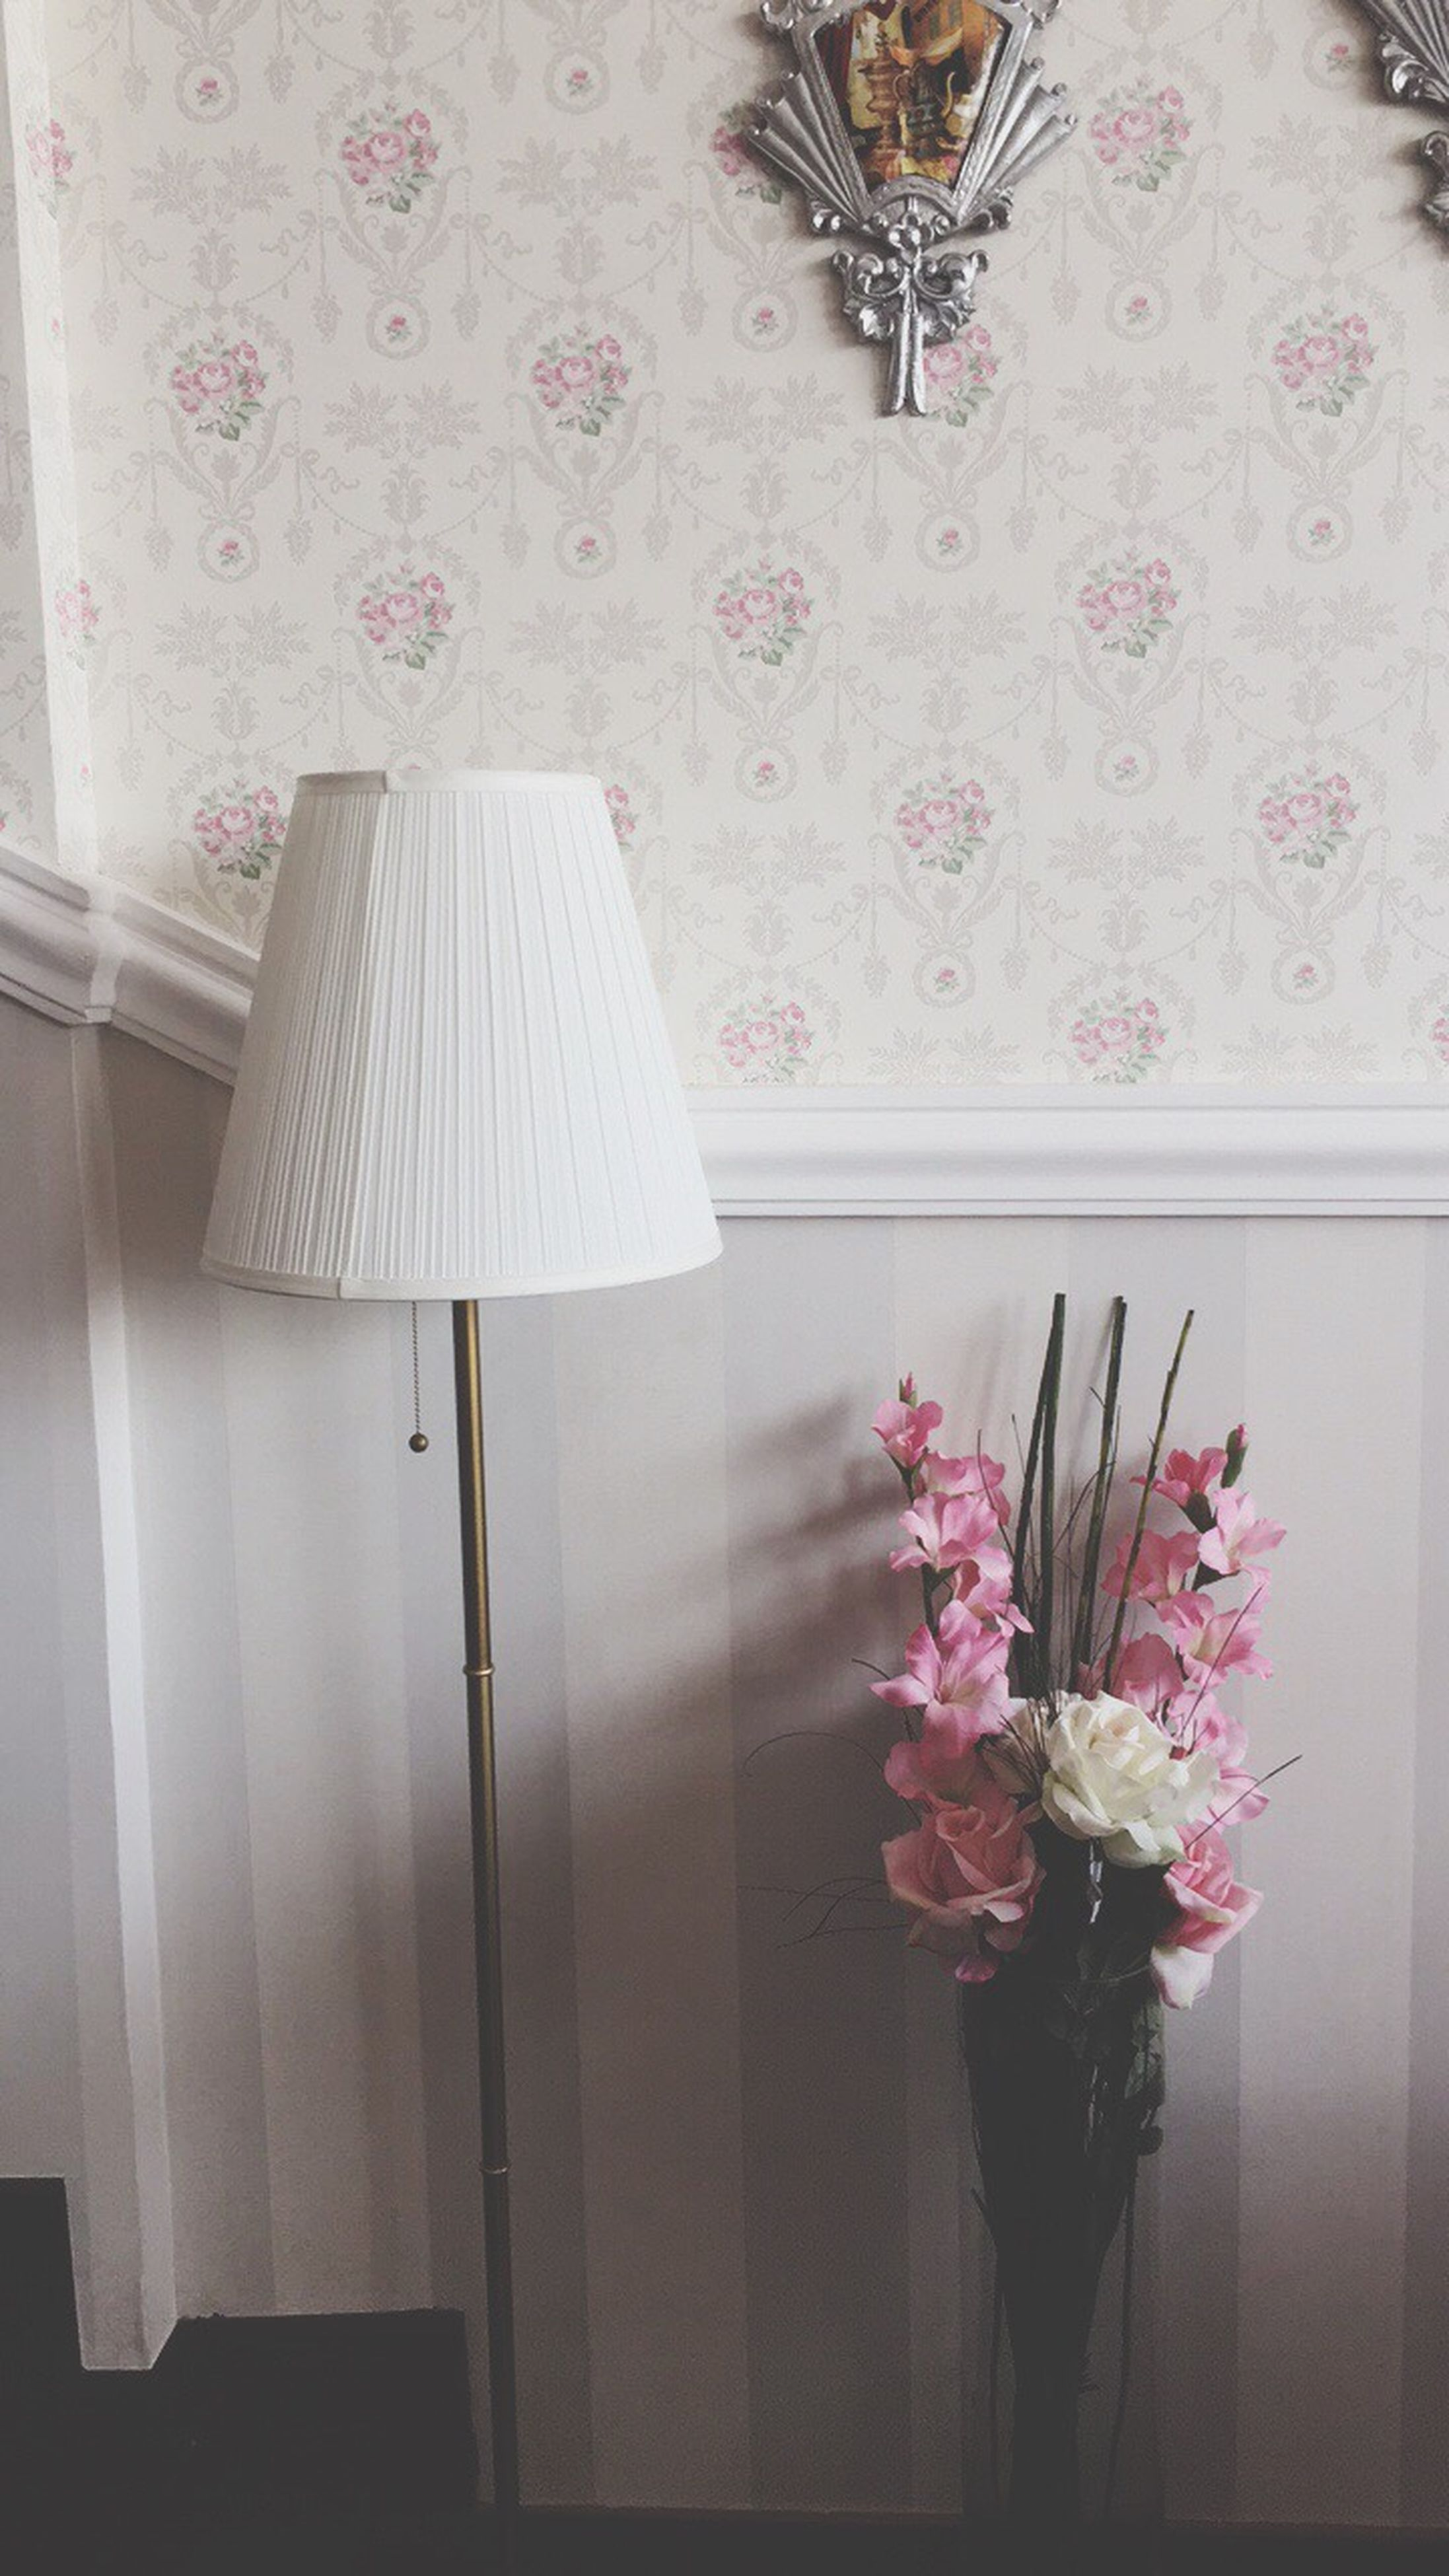 indoors, floral pattern, curtain, no people, flower, lamp shade, home interior, bedroom, tranquility, floor lamp, home showcase interior, day, side table, clock